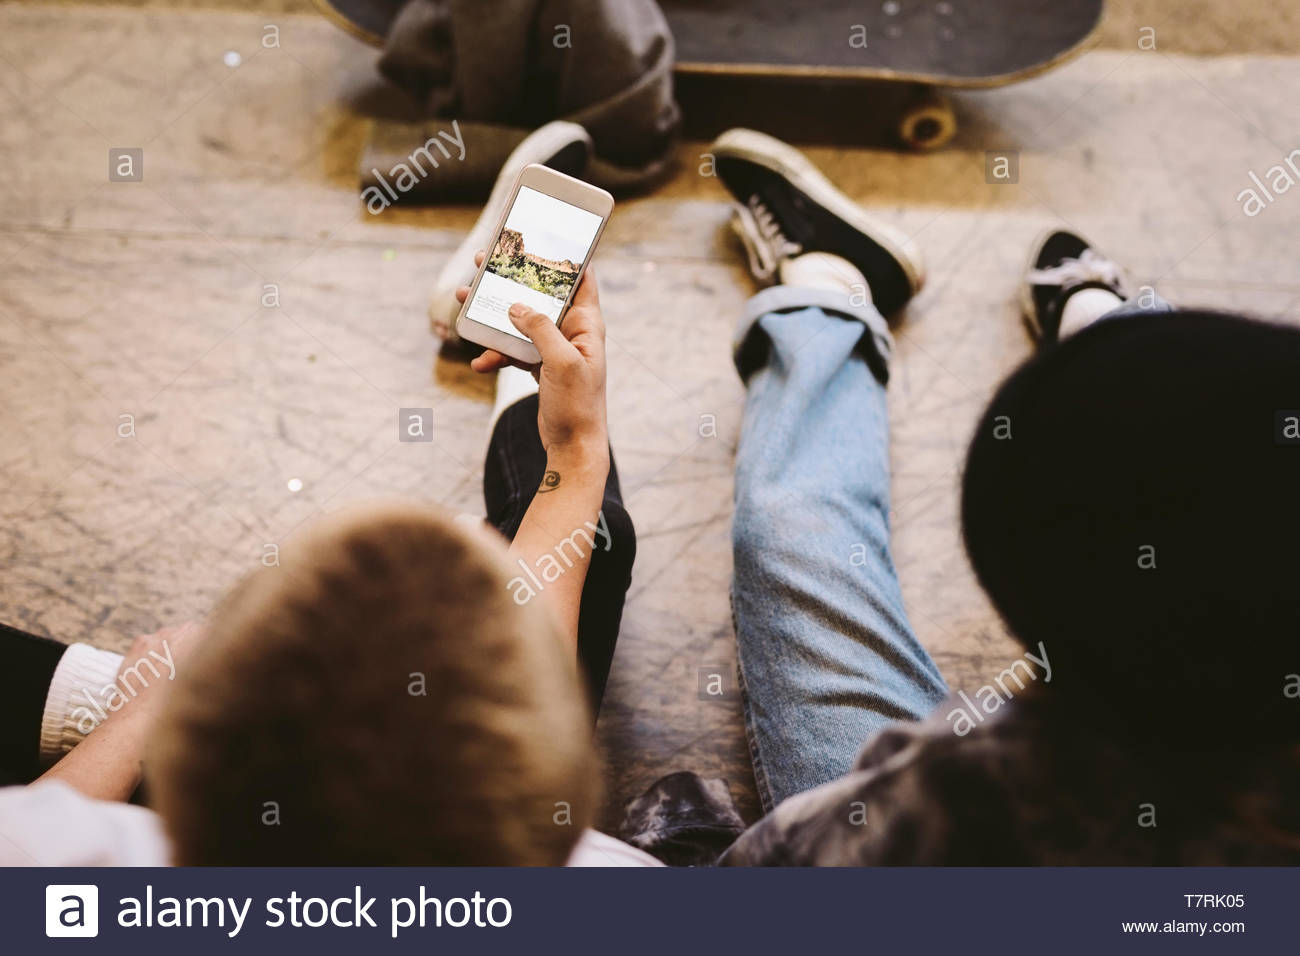 Friends hanging out, using smart phone - Stock Image